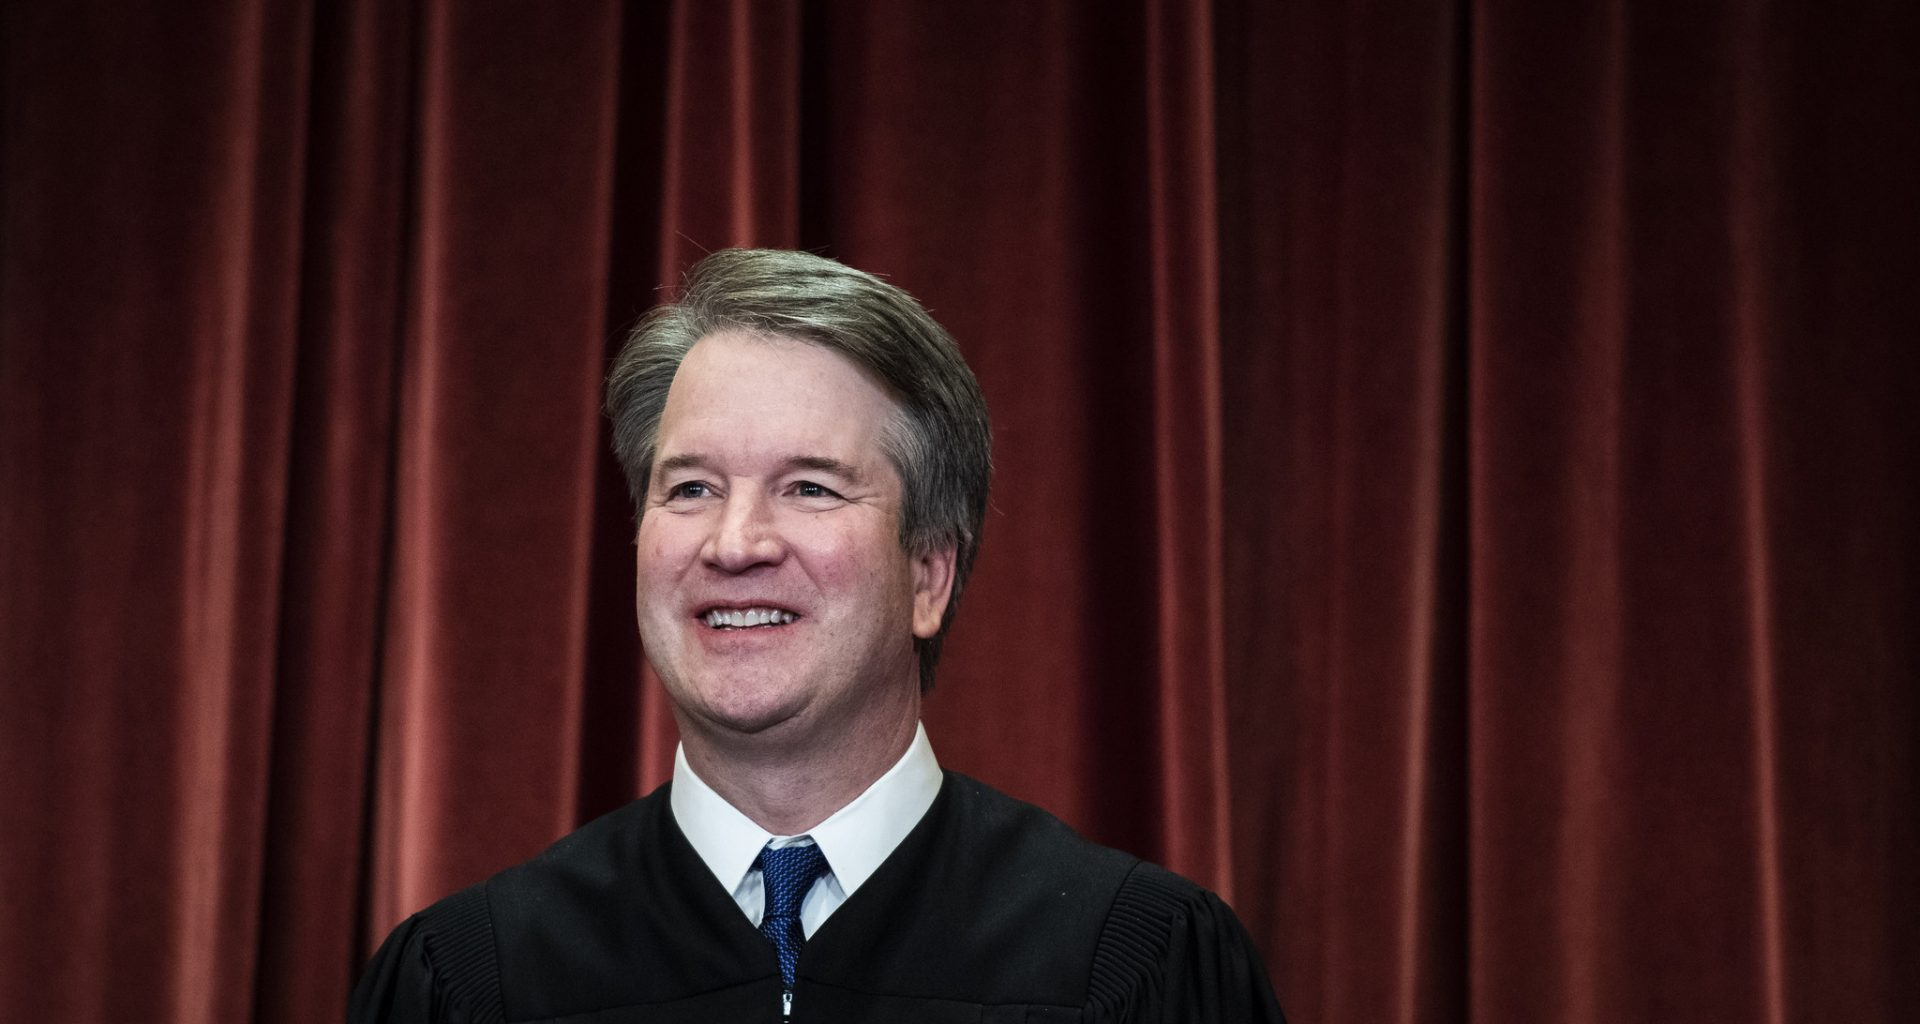 Breaking News About Justice Kavanaugh